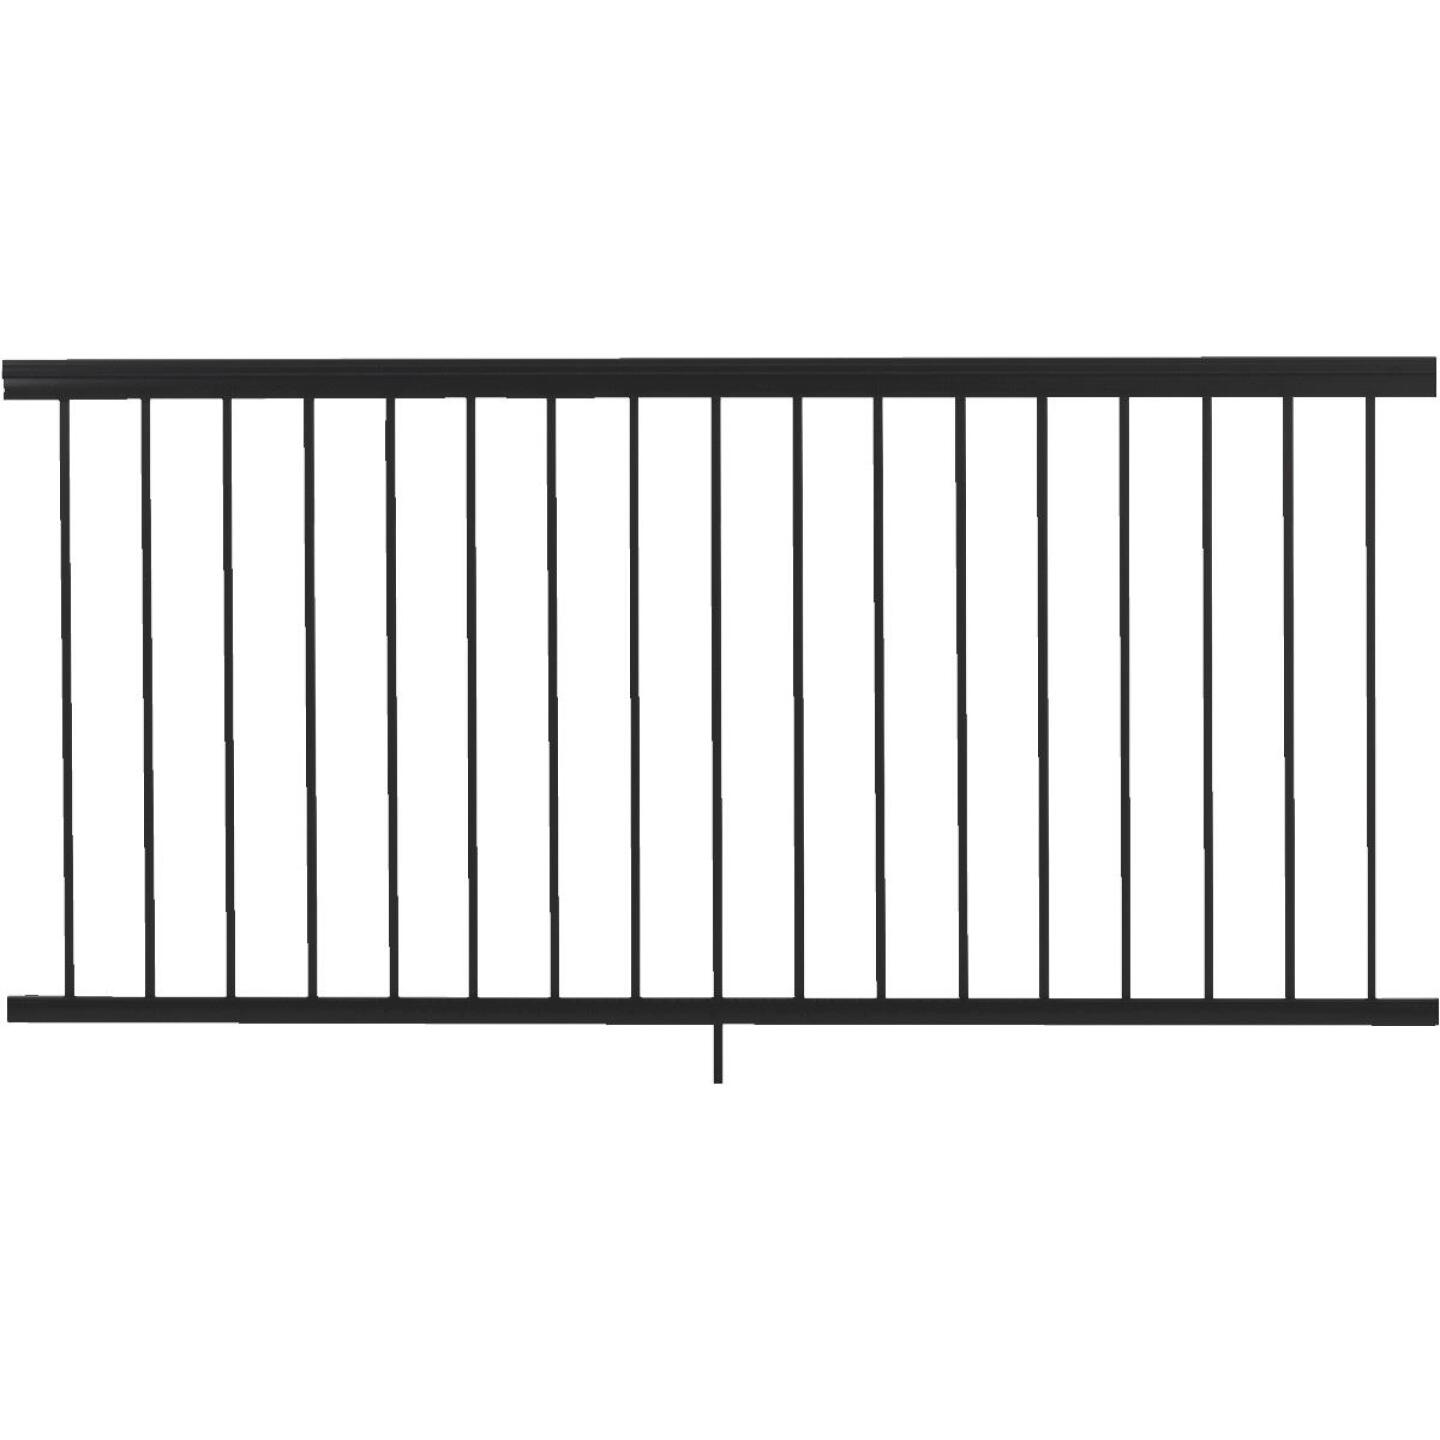 Gilpin Summit 36 In. H. x 6 Ft. L. Black Aluminum Railing Image 1